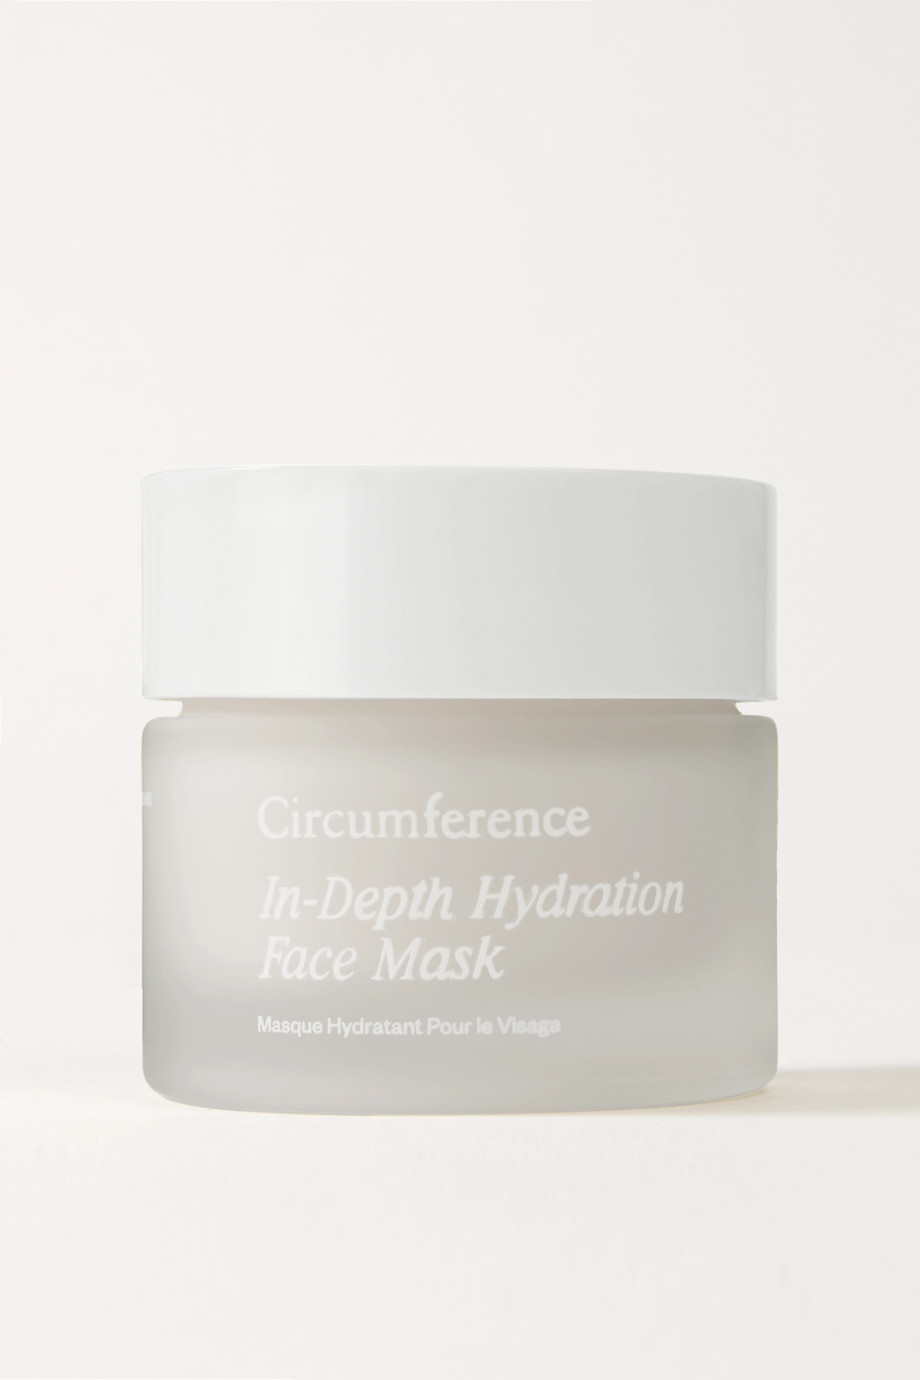 Circumference In-Depth Hydration Face Mask, 50ml